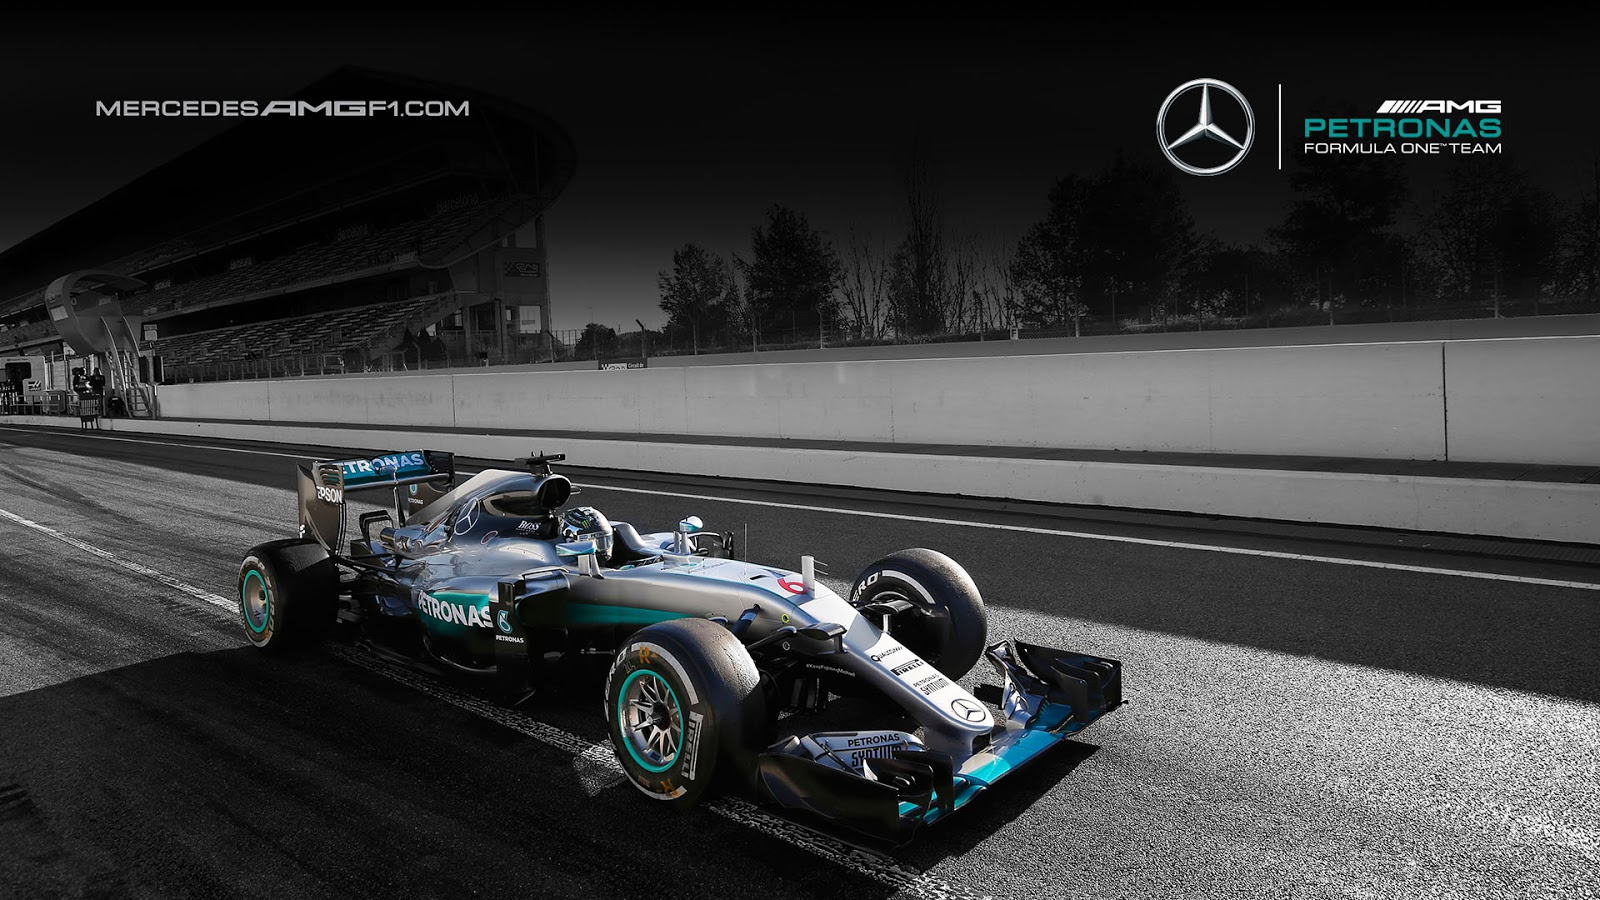 Mercedes w08 f1 wallpaper 6